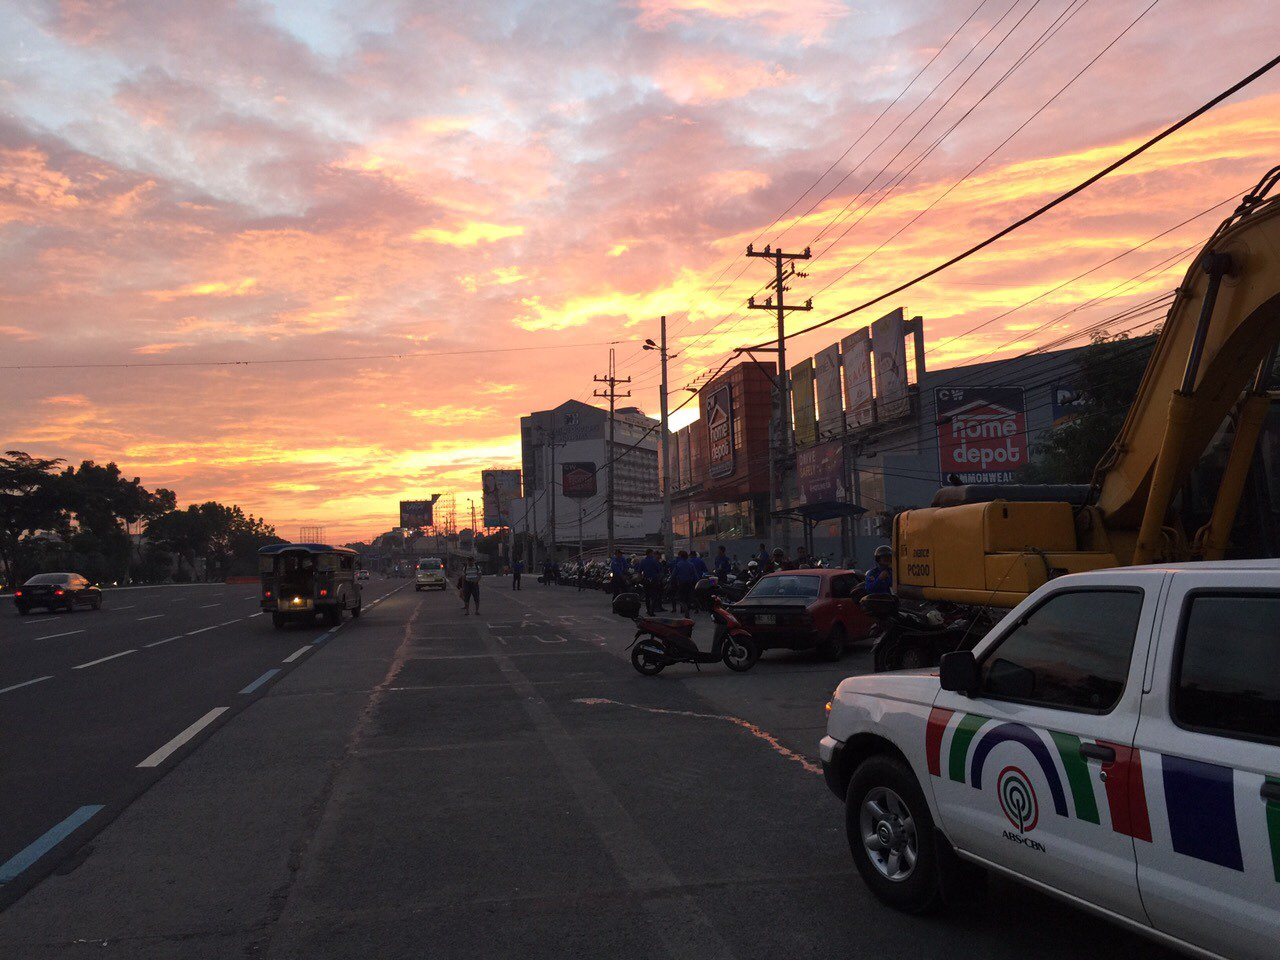 ABS CBN Crew Cab Facing Sunrise Over Commonwealth Avenue Shot By Mike Navallo